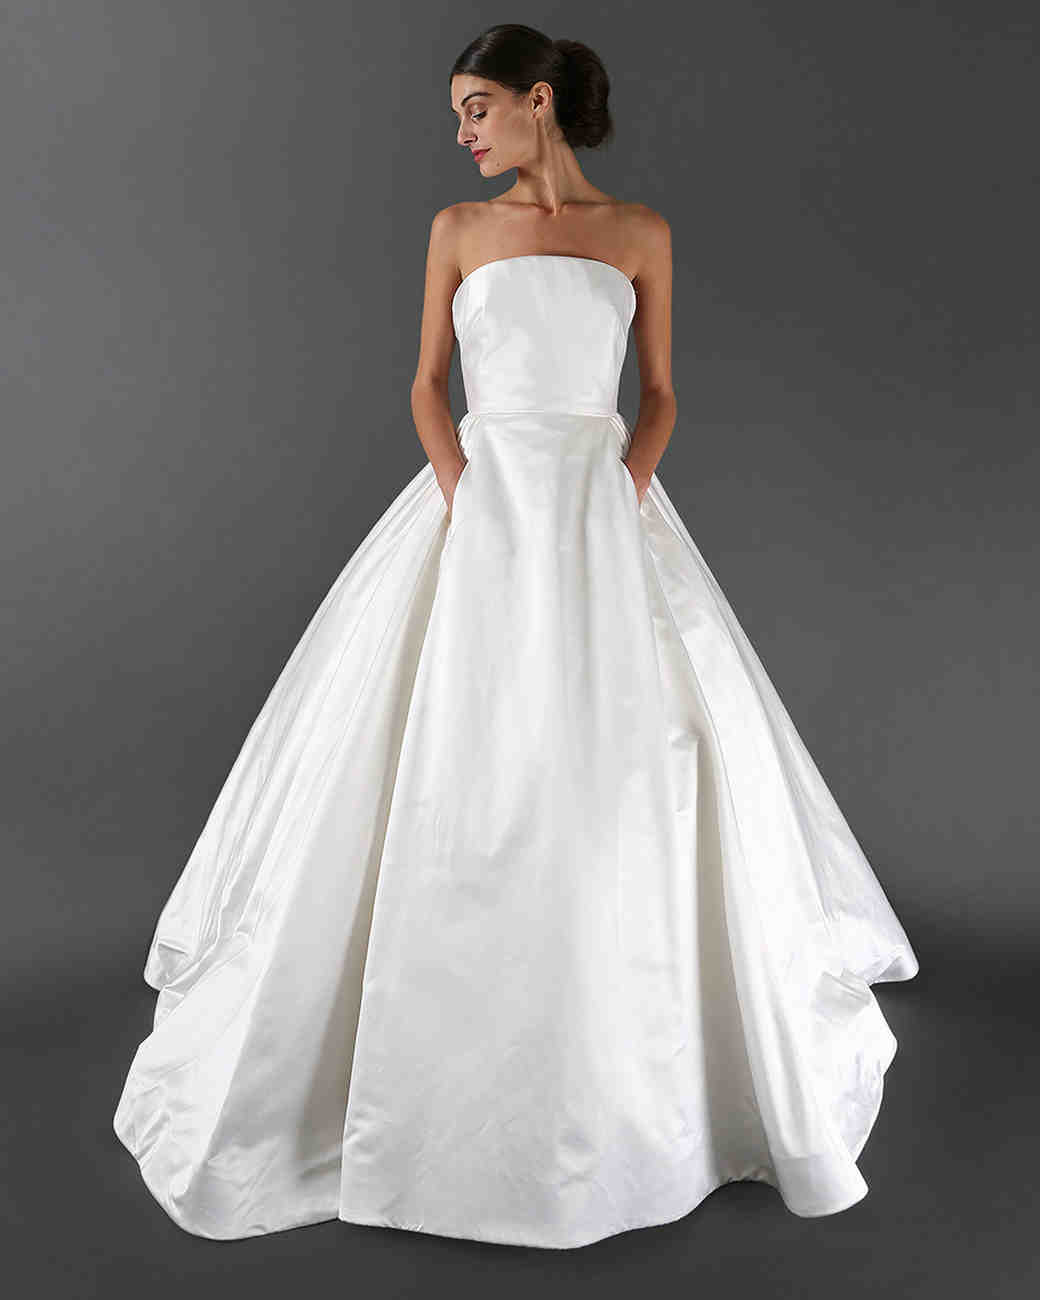 46 Pretty Wedding Dresses with Pockets  Martha Stewart